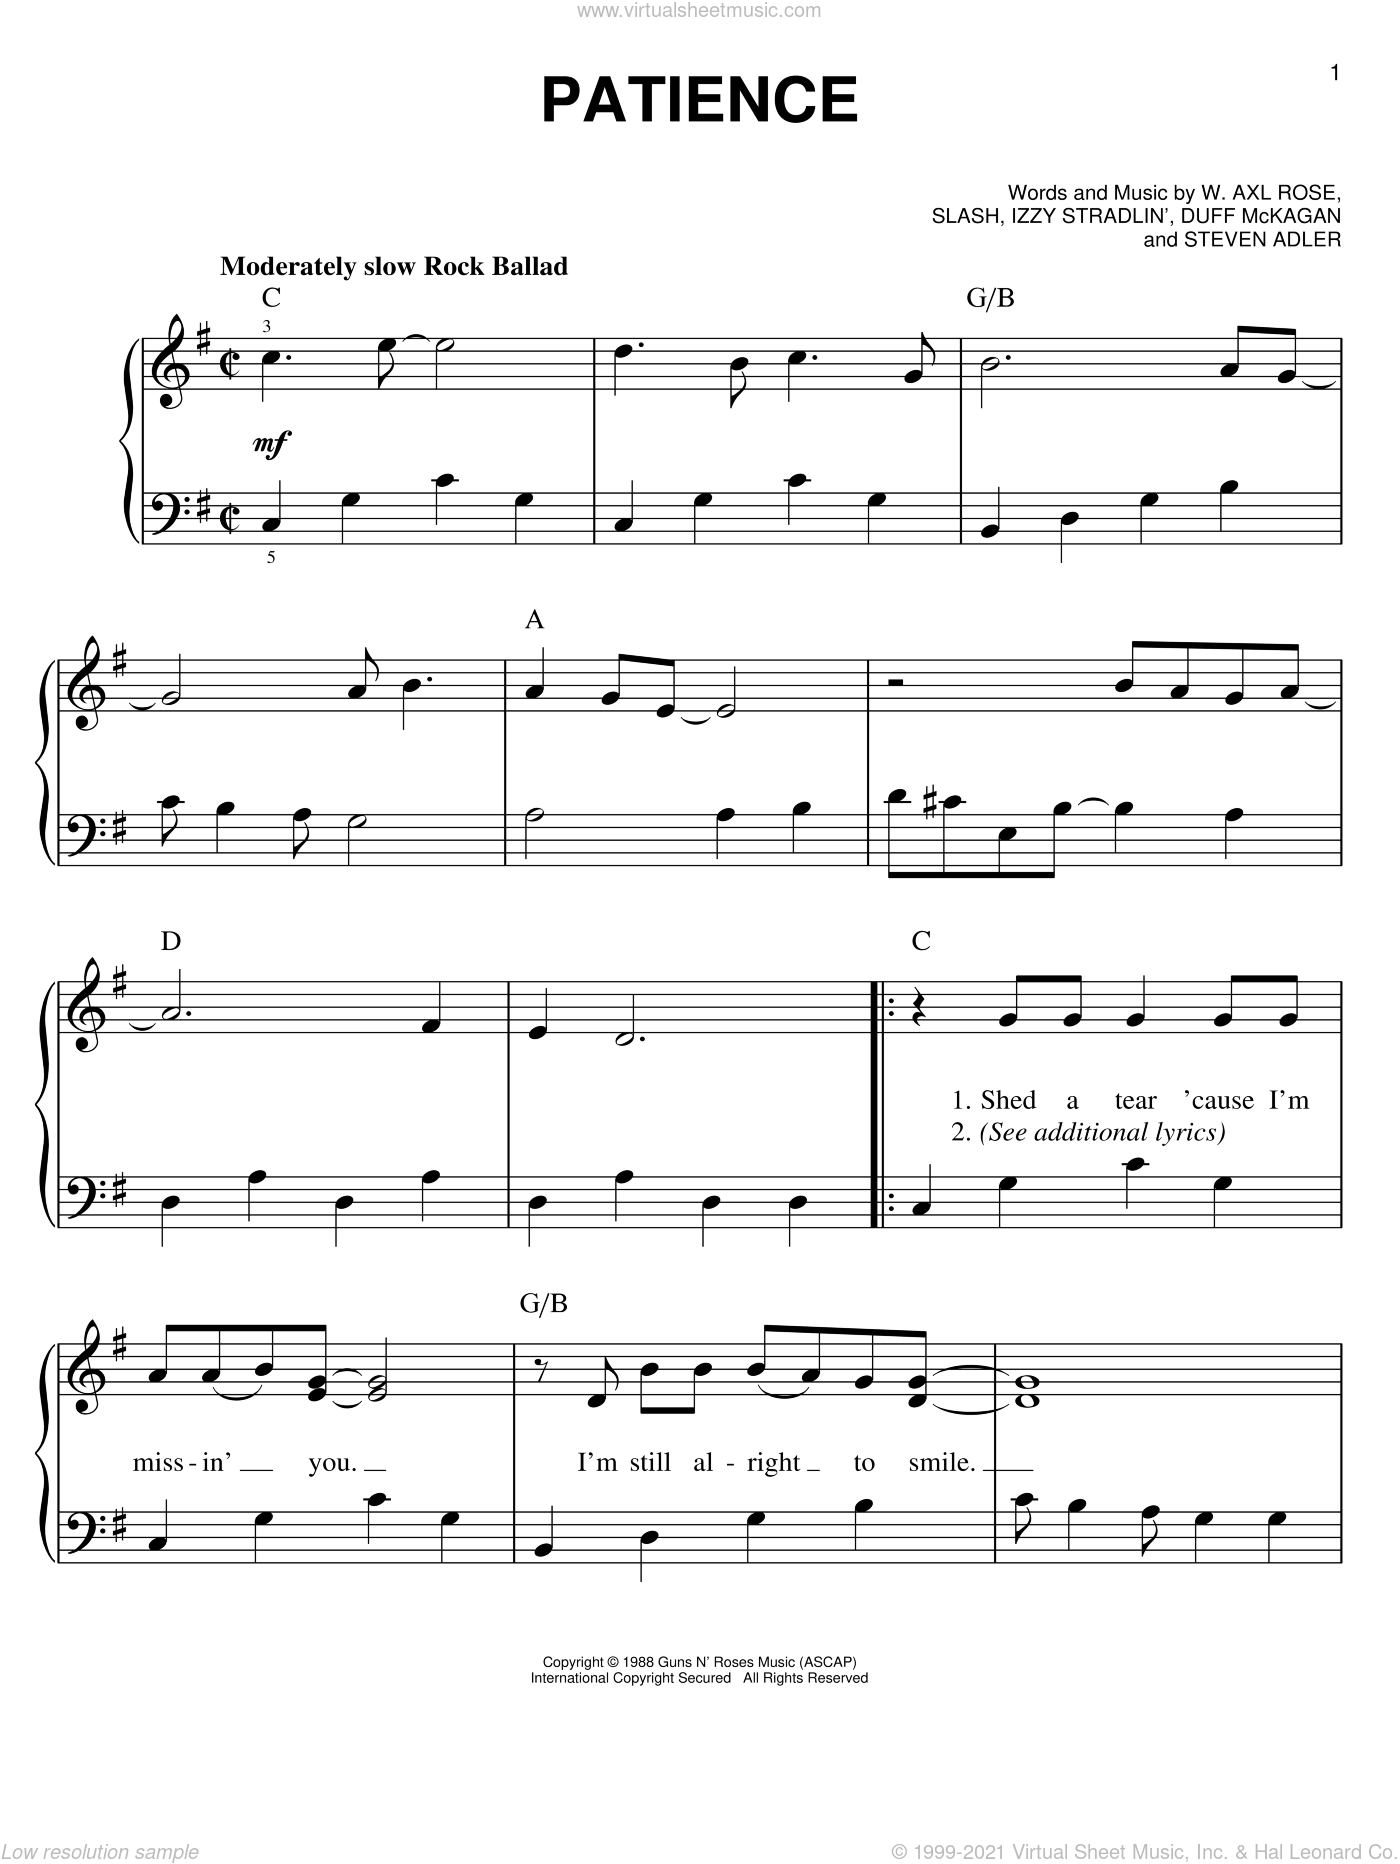 Patience sheet music for piano solo by Axl Rose